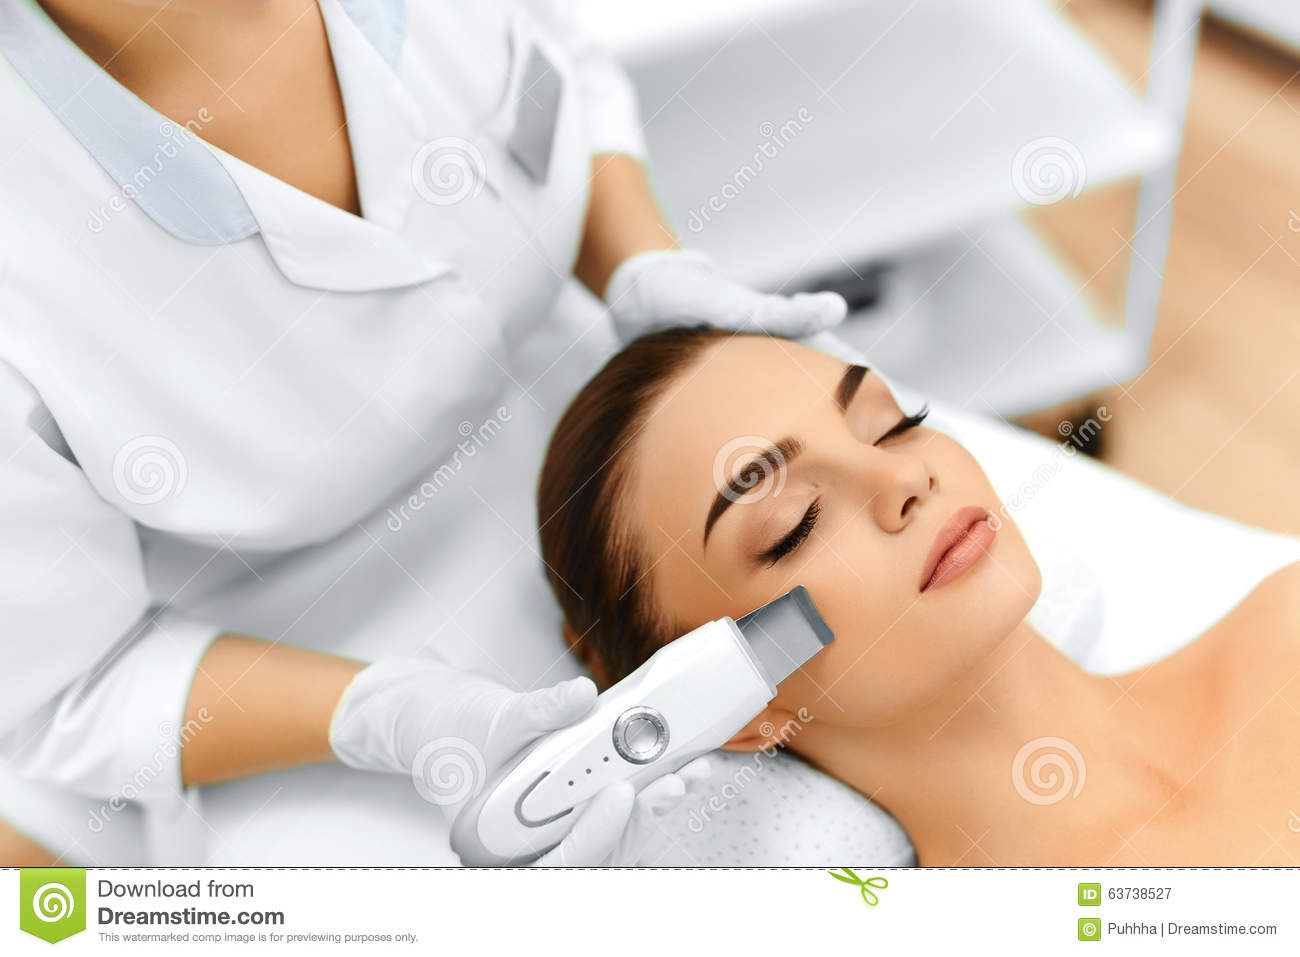 Skin care ultrasound cavitation facial peeling skin for A trial beauty treatment salon